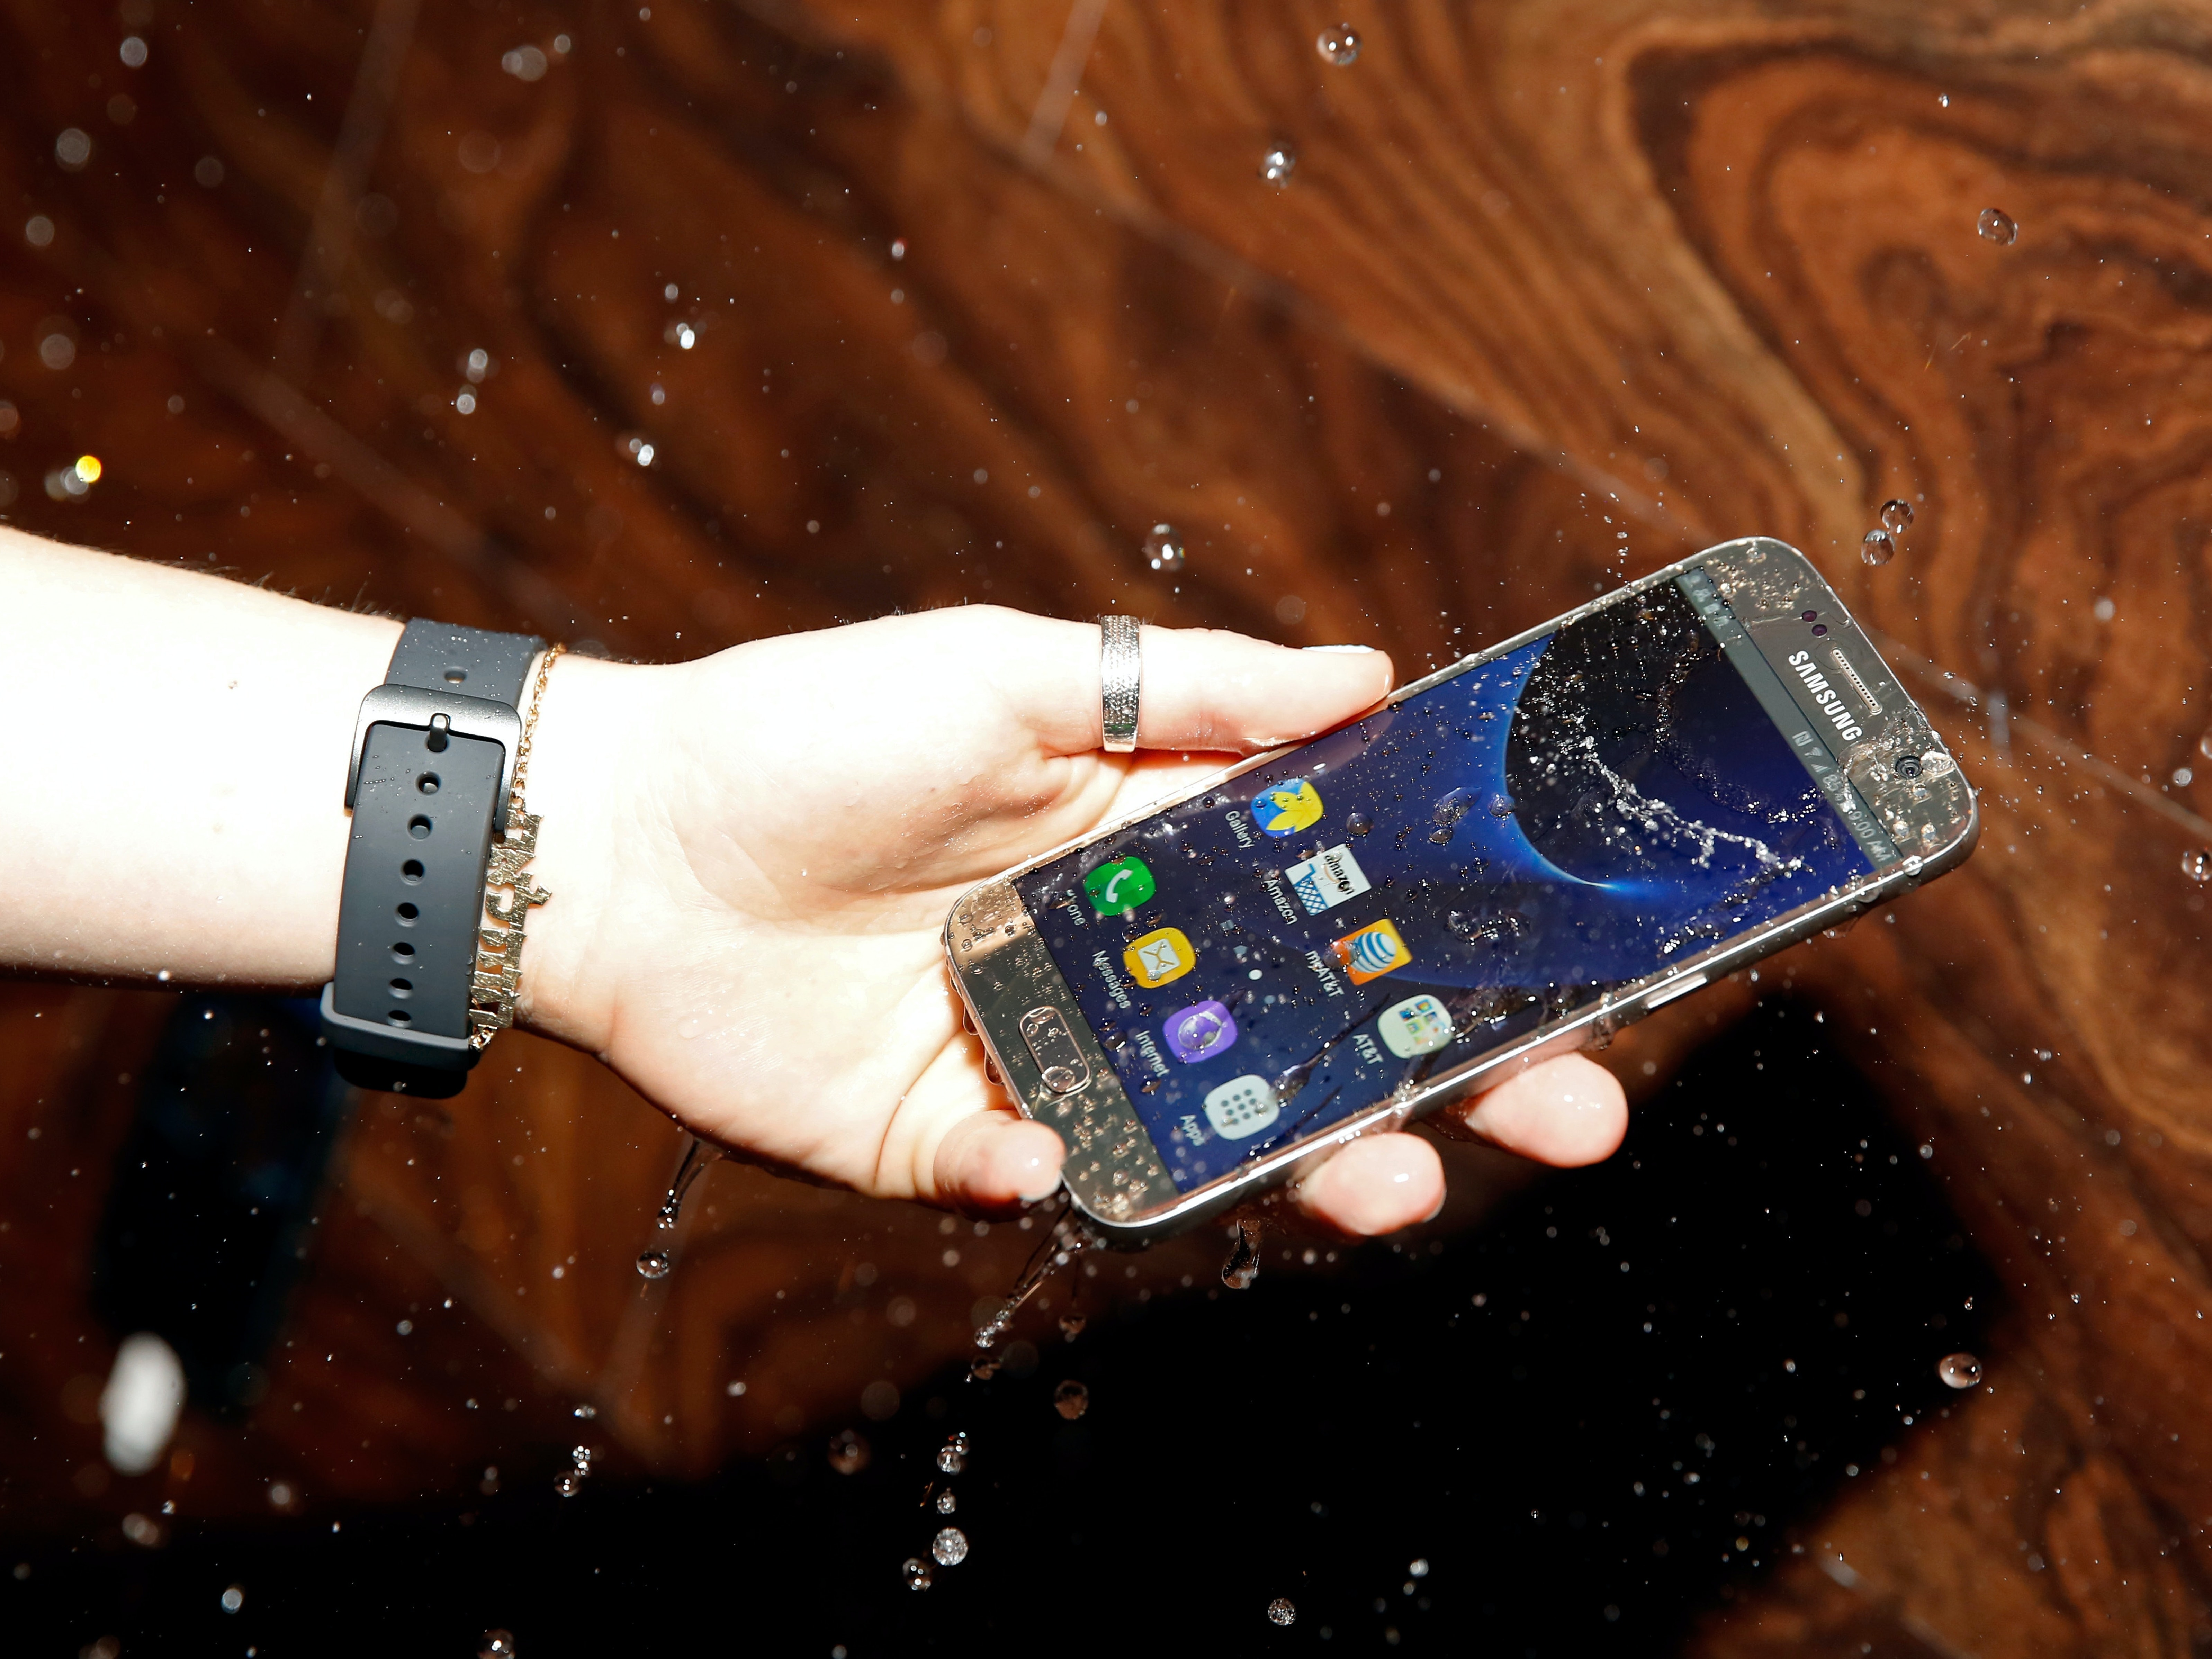 AUSTIN, TX - MARCH 11:  The water resistant Samsung Galaxy S7 is seen at The Samsung Studio at SXSW 2016 on March 11, 2016 in Austin, Texas.  (Photo by Rick Kern/Getty Images for Samsung)